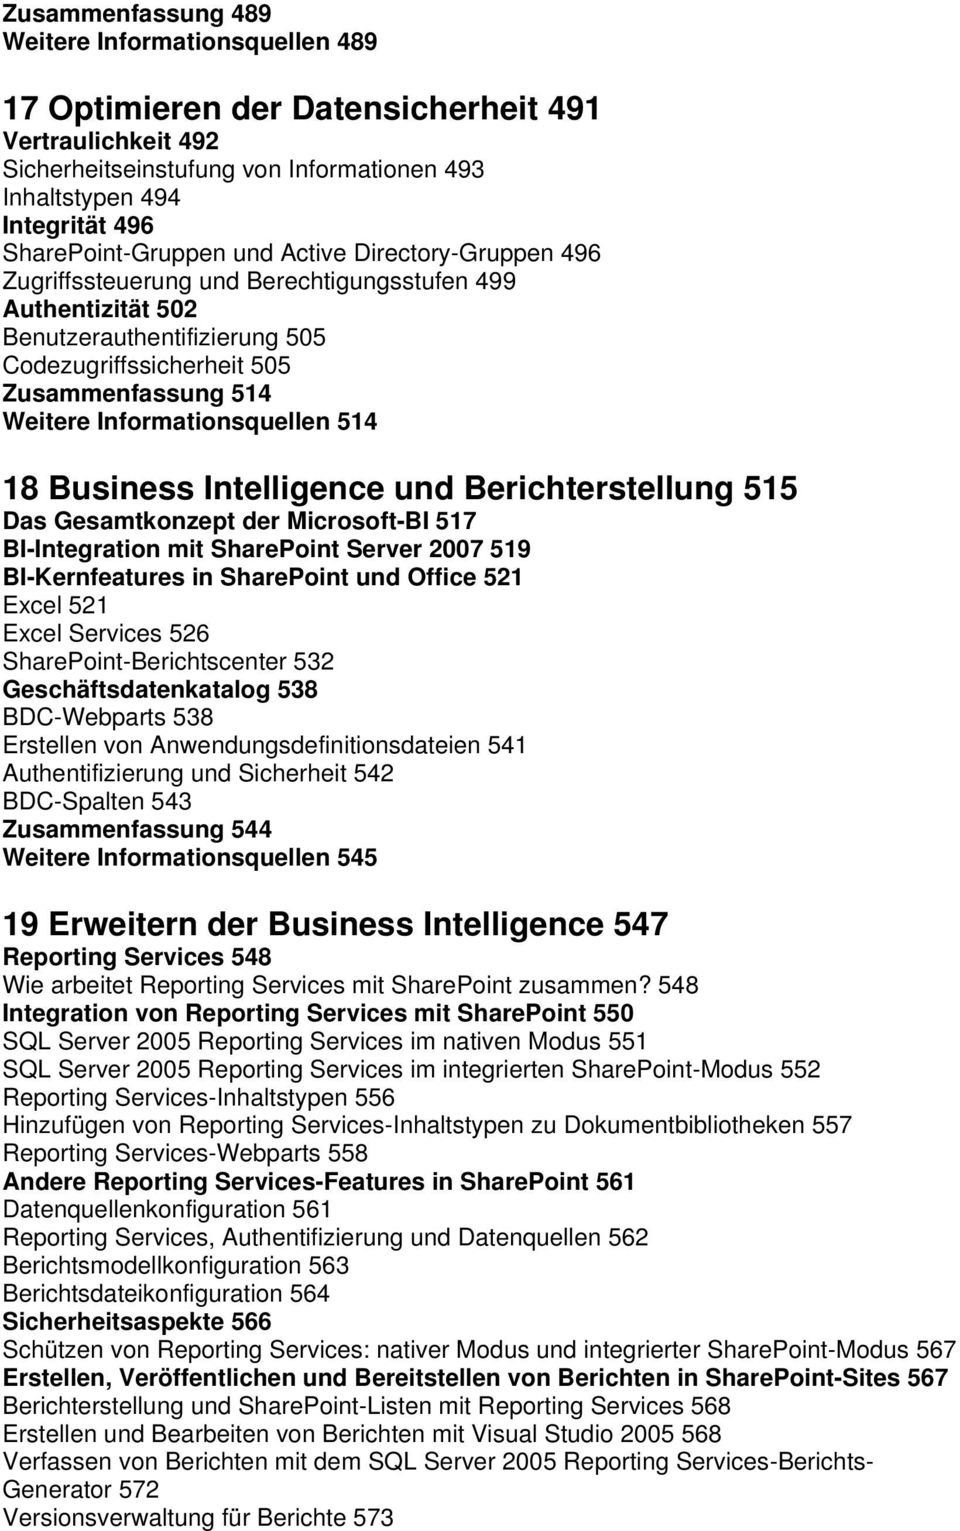 Weitere Informationsquellen 514 18 Business Intelligence und Berichterstellung 515 Das Gesamtkonzept der Microsoft-BI 517 BI-Integration mit SharePoint Server 2007 519 BI-Kernfeatures in SharePoint